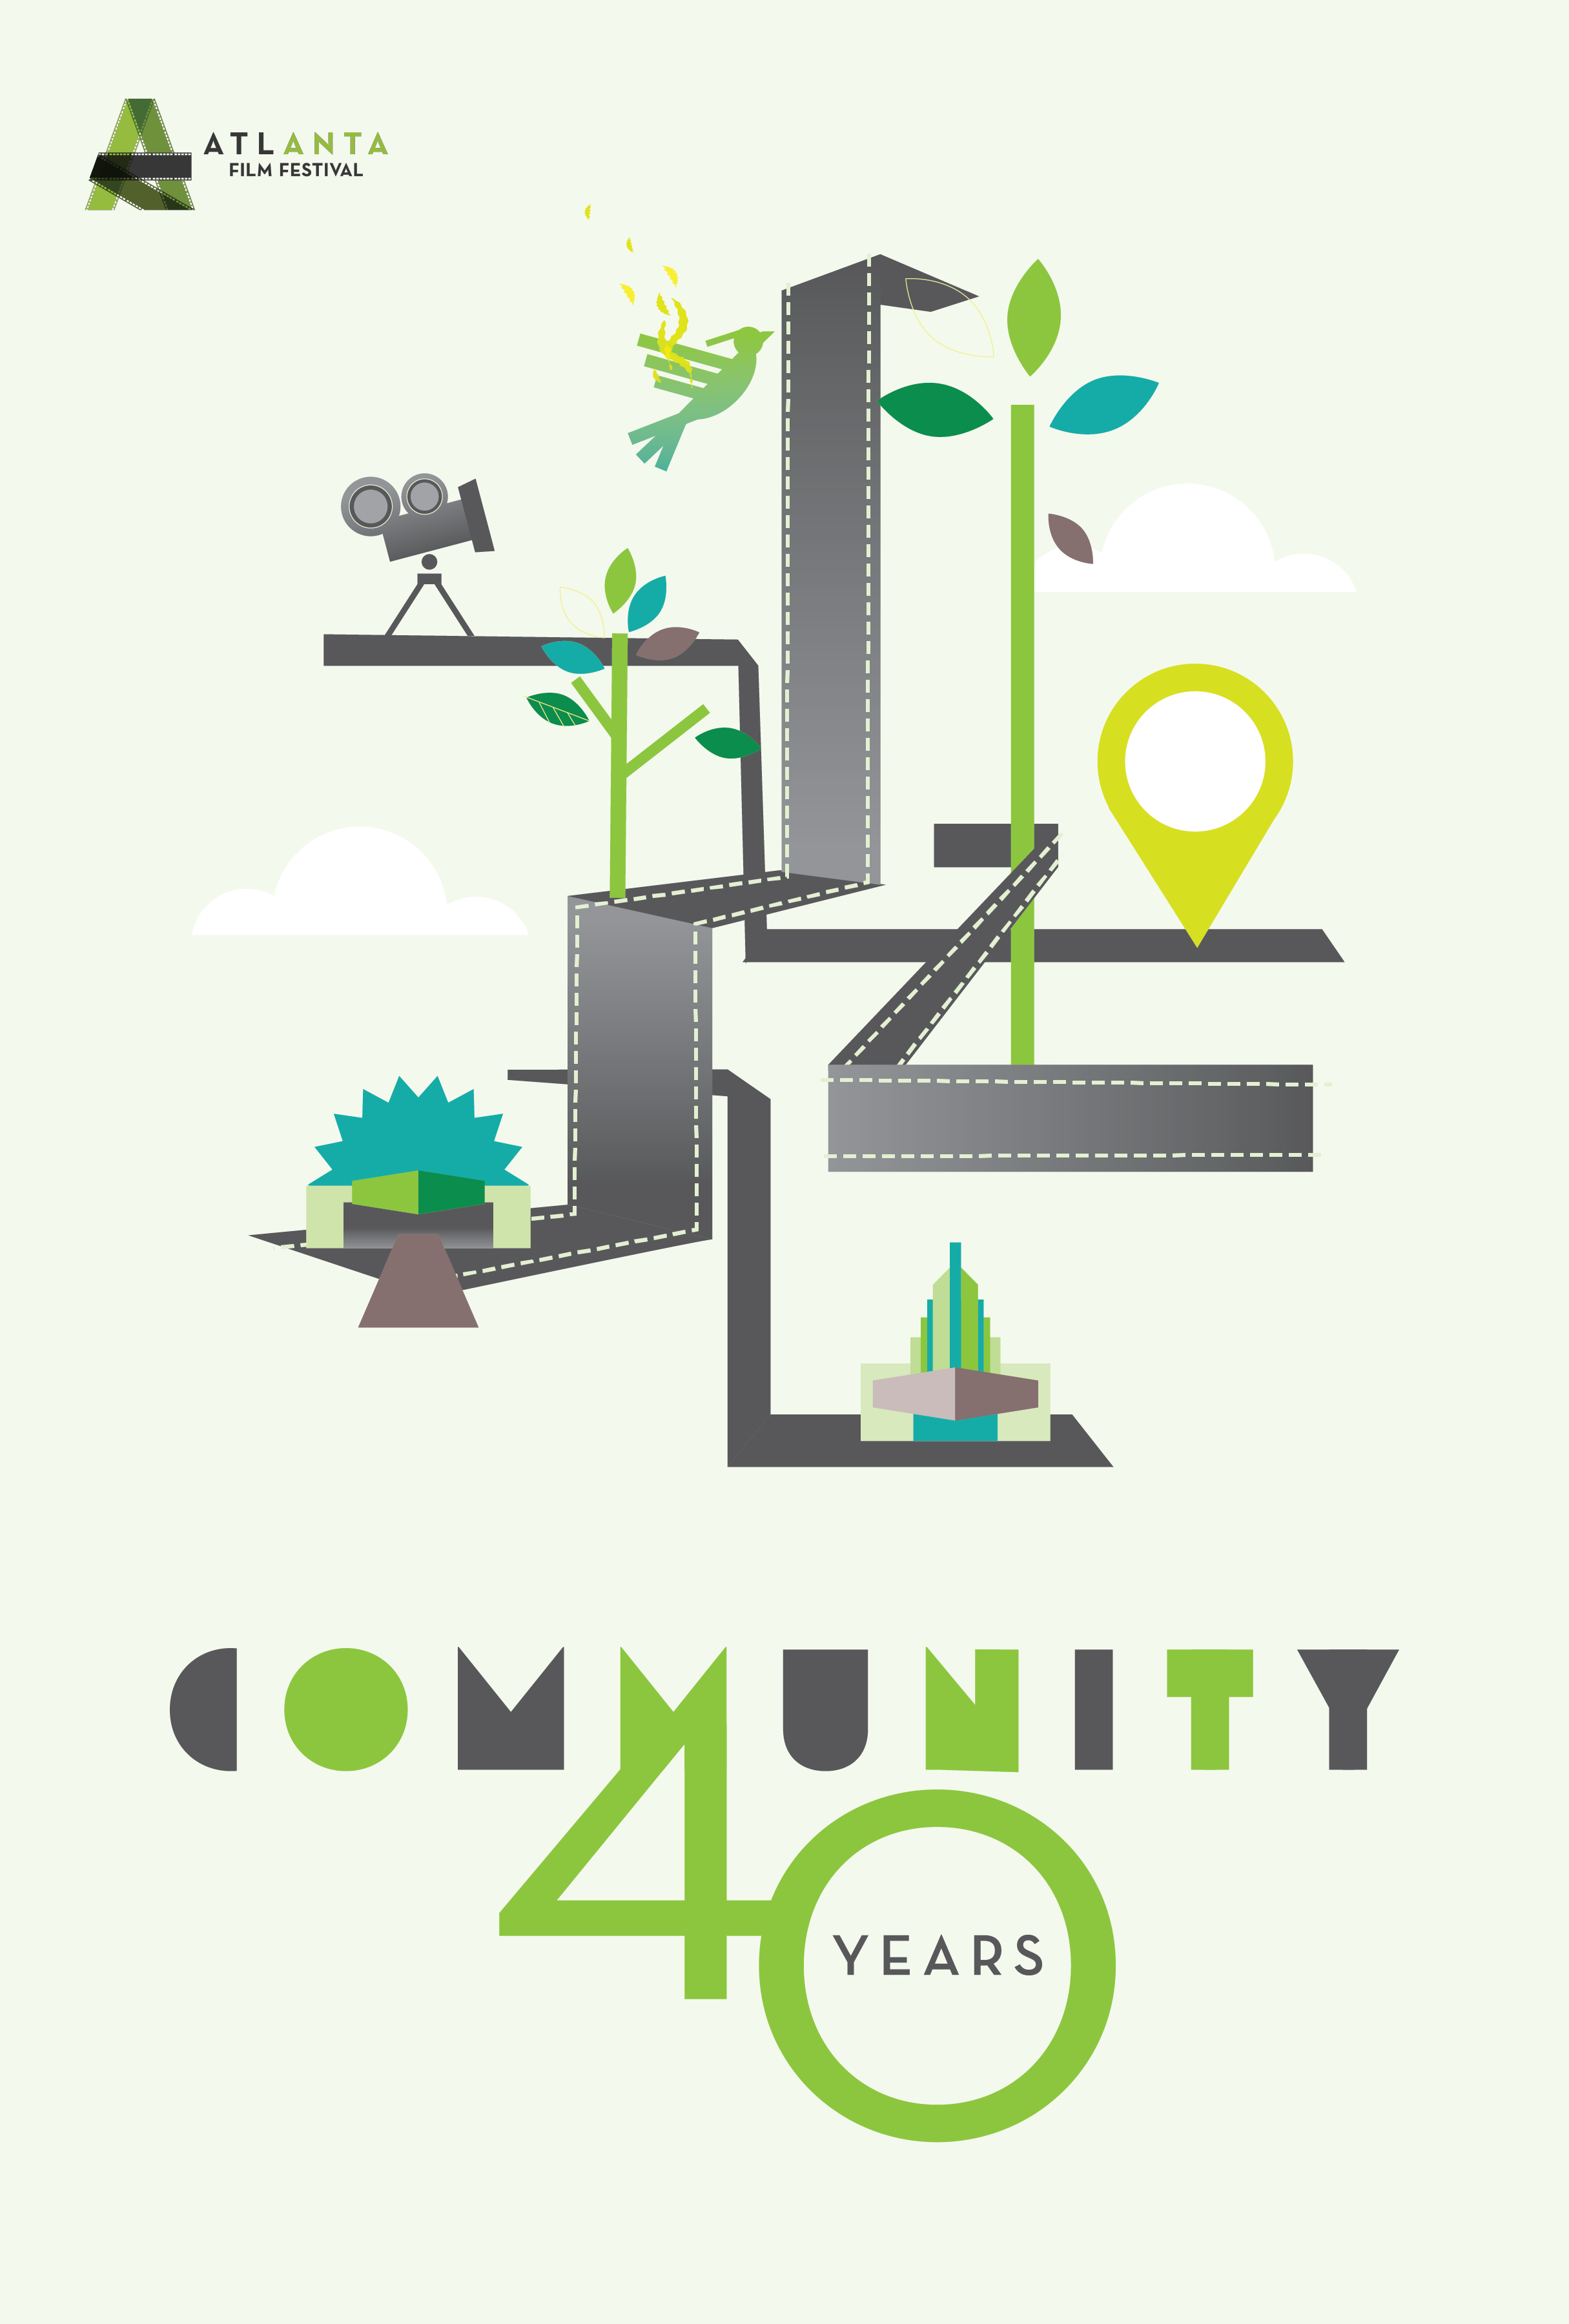 ATLFFCommunity40Poster.png